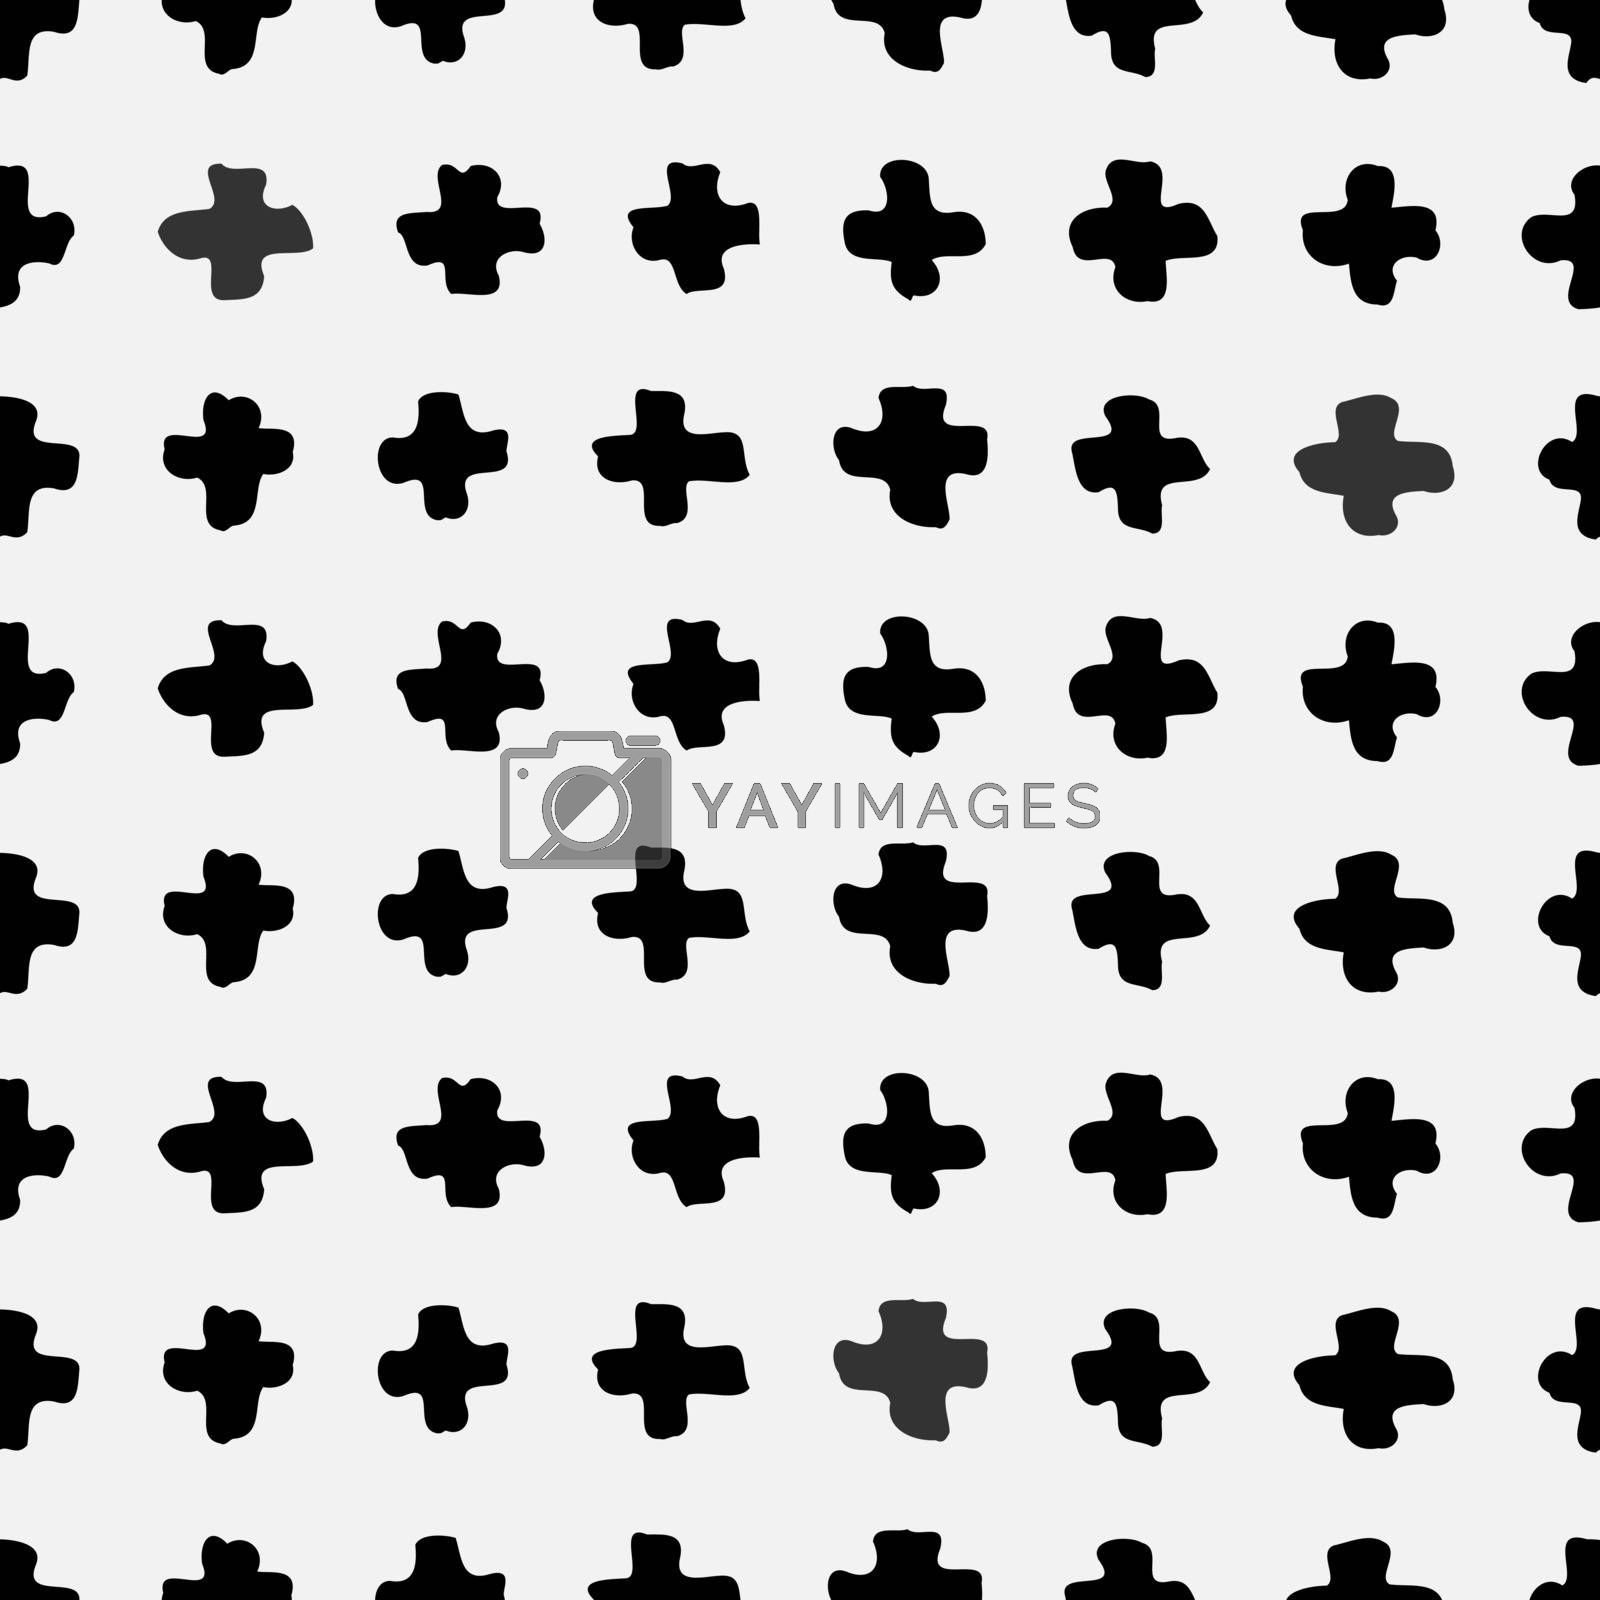 Hand drawn abstract seamless repeat pattern with cross shapes in black and white.